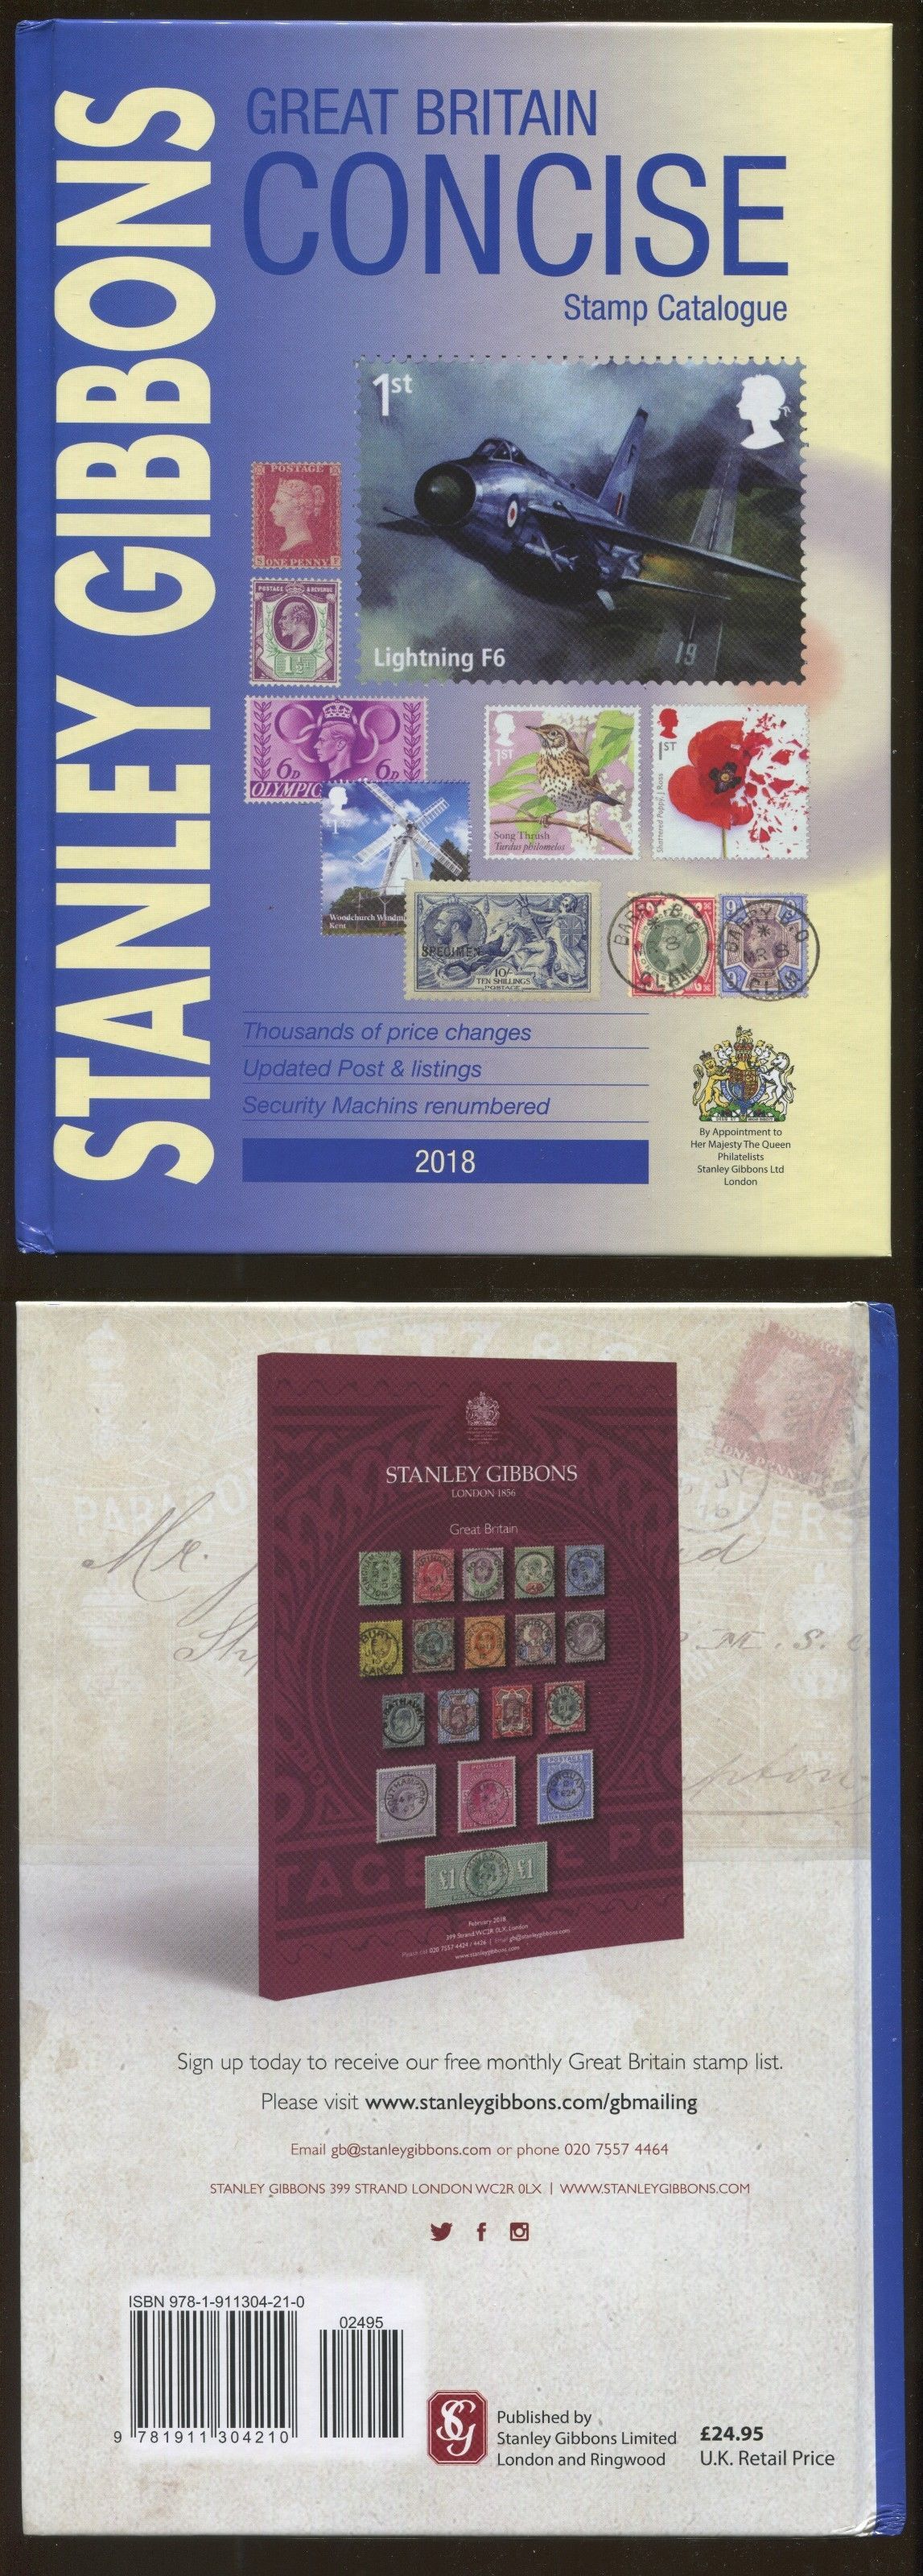 Publications 701: New 2018 Stanley Gibbons Great Britain Concise